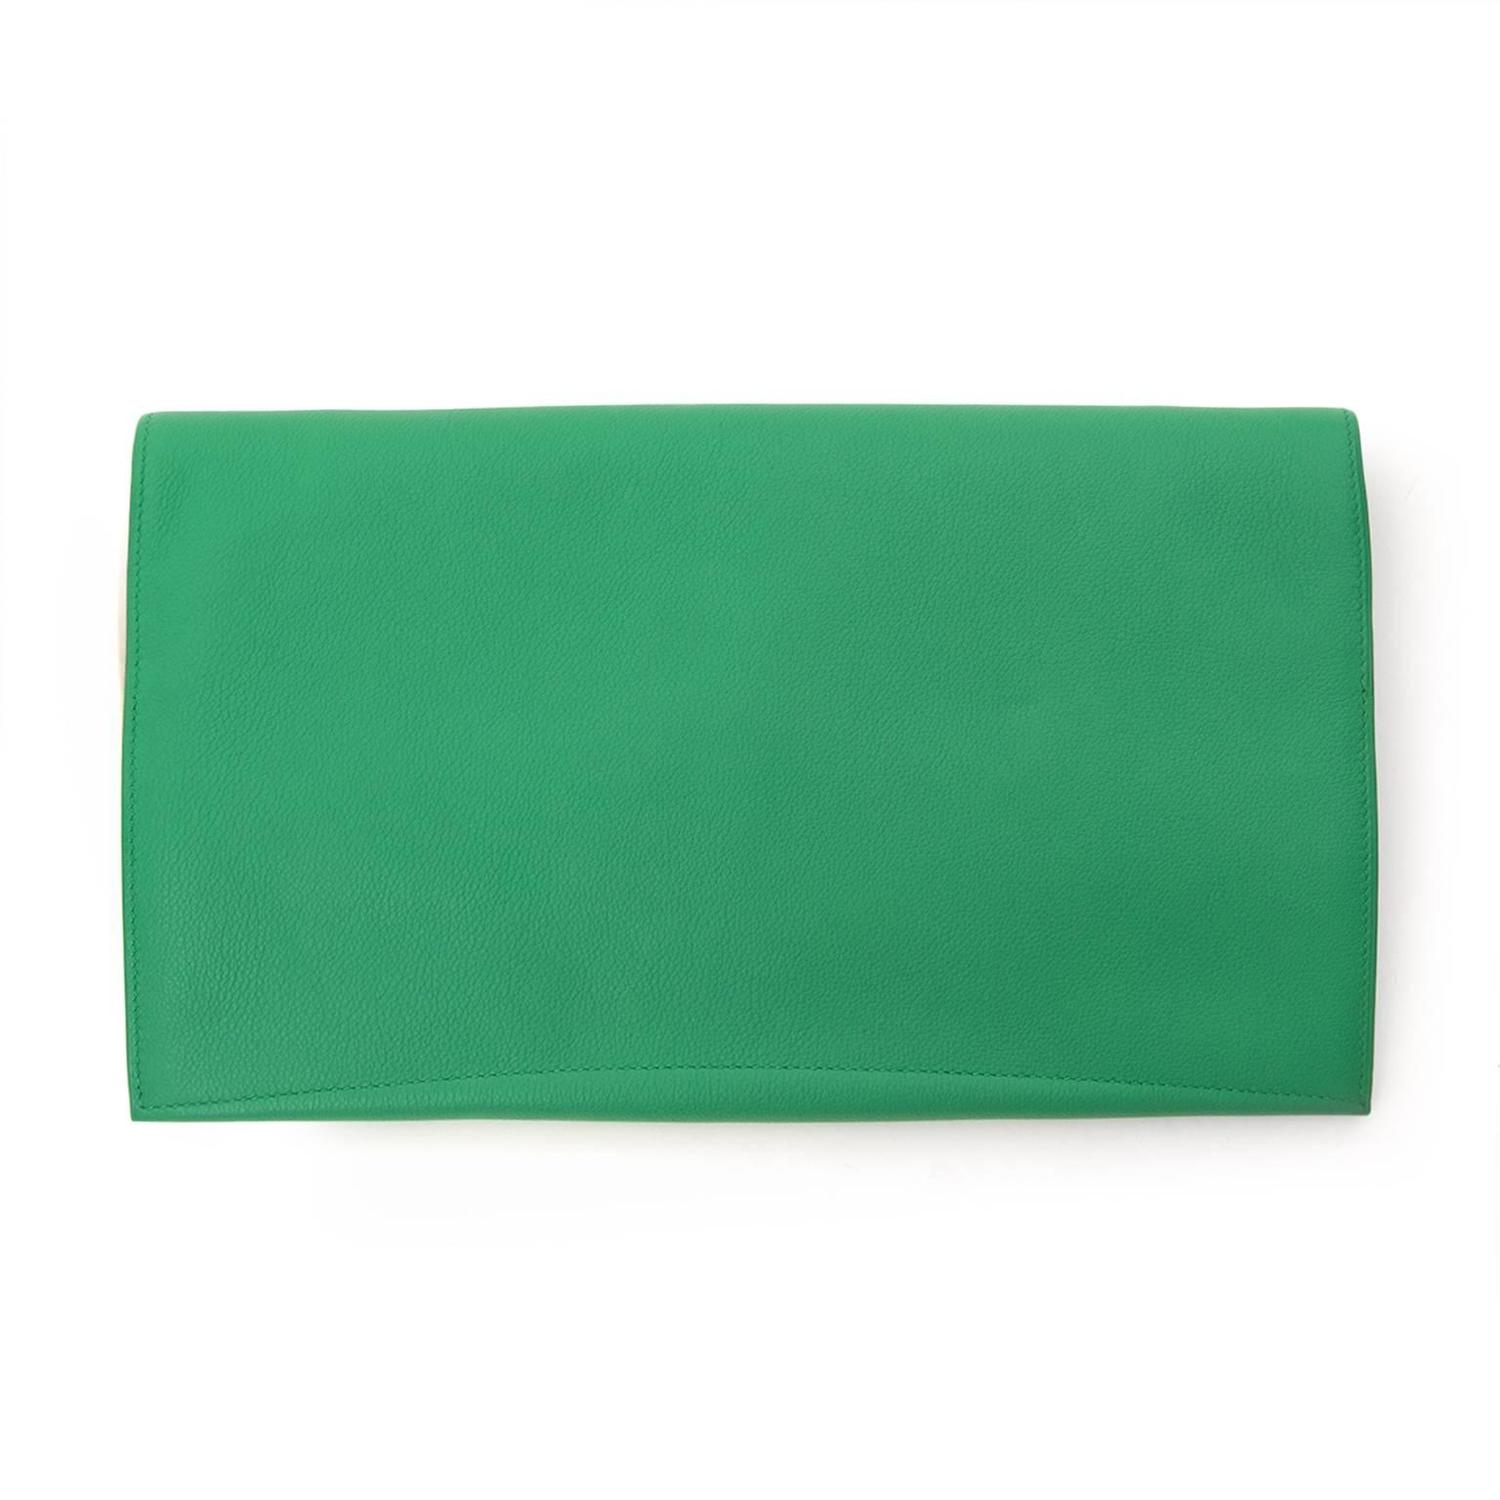 fake hermes bag - Hermes PliPlat Clutch bambou For Sale at 1stdibs